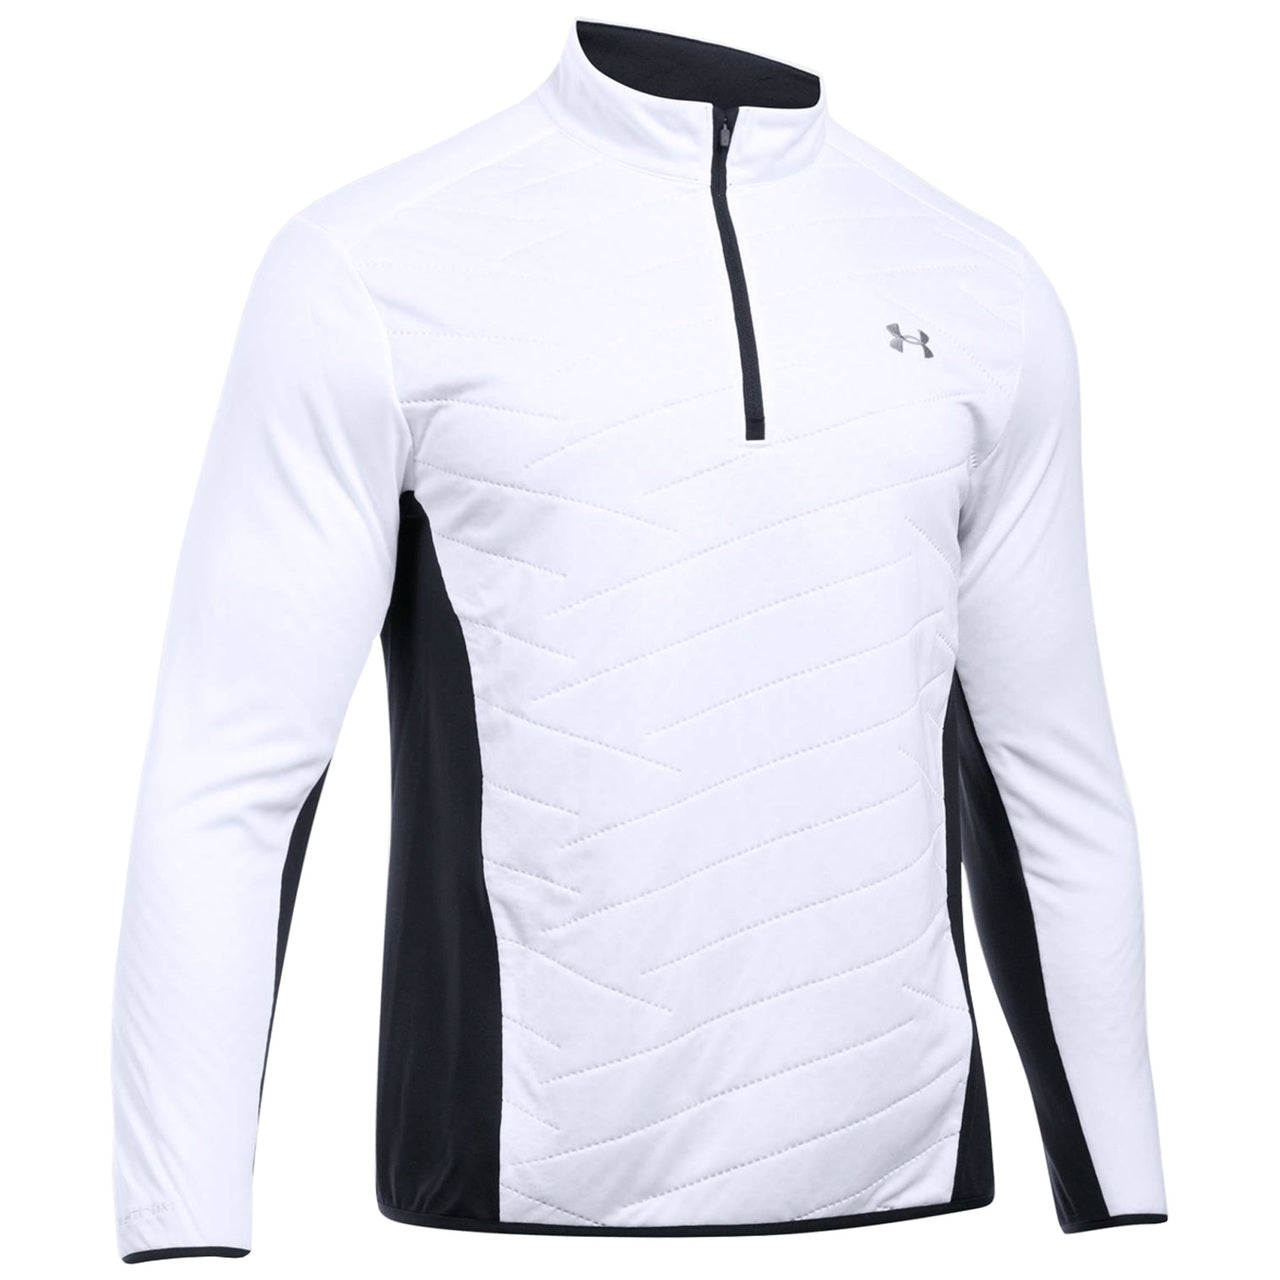 UNDER ARMOUR MENS REACTOR HYBRID HALF ZIP TOP